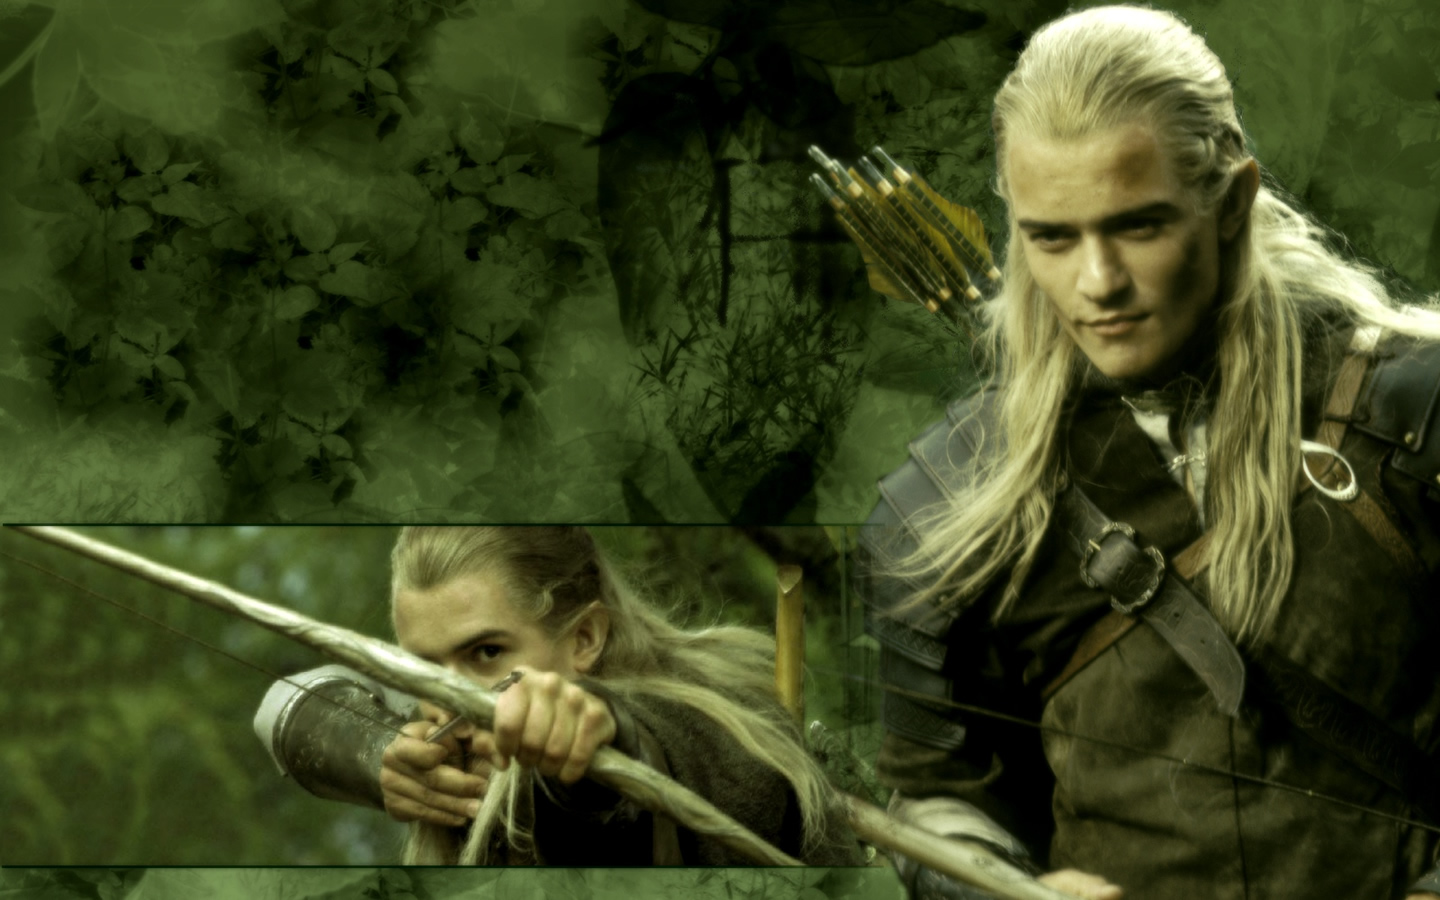 Wallpapers Movies Lord Of The Rings Wallpaper HD 1440x900